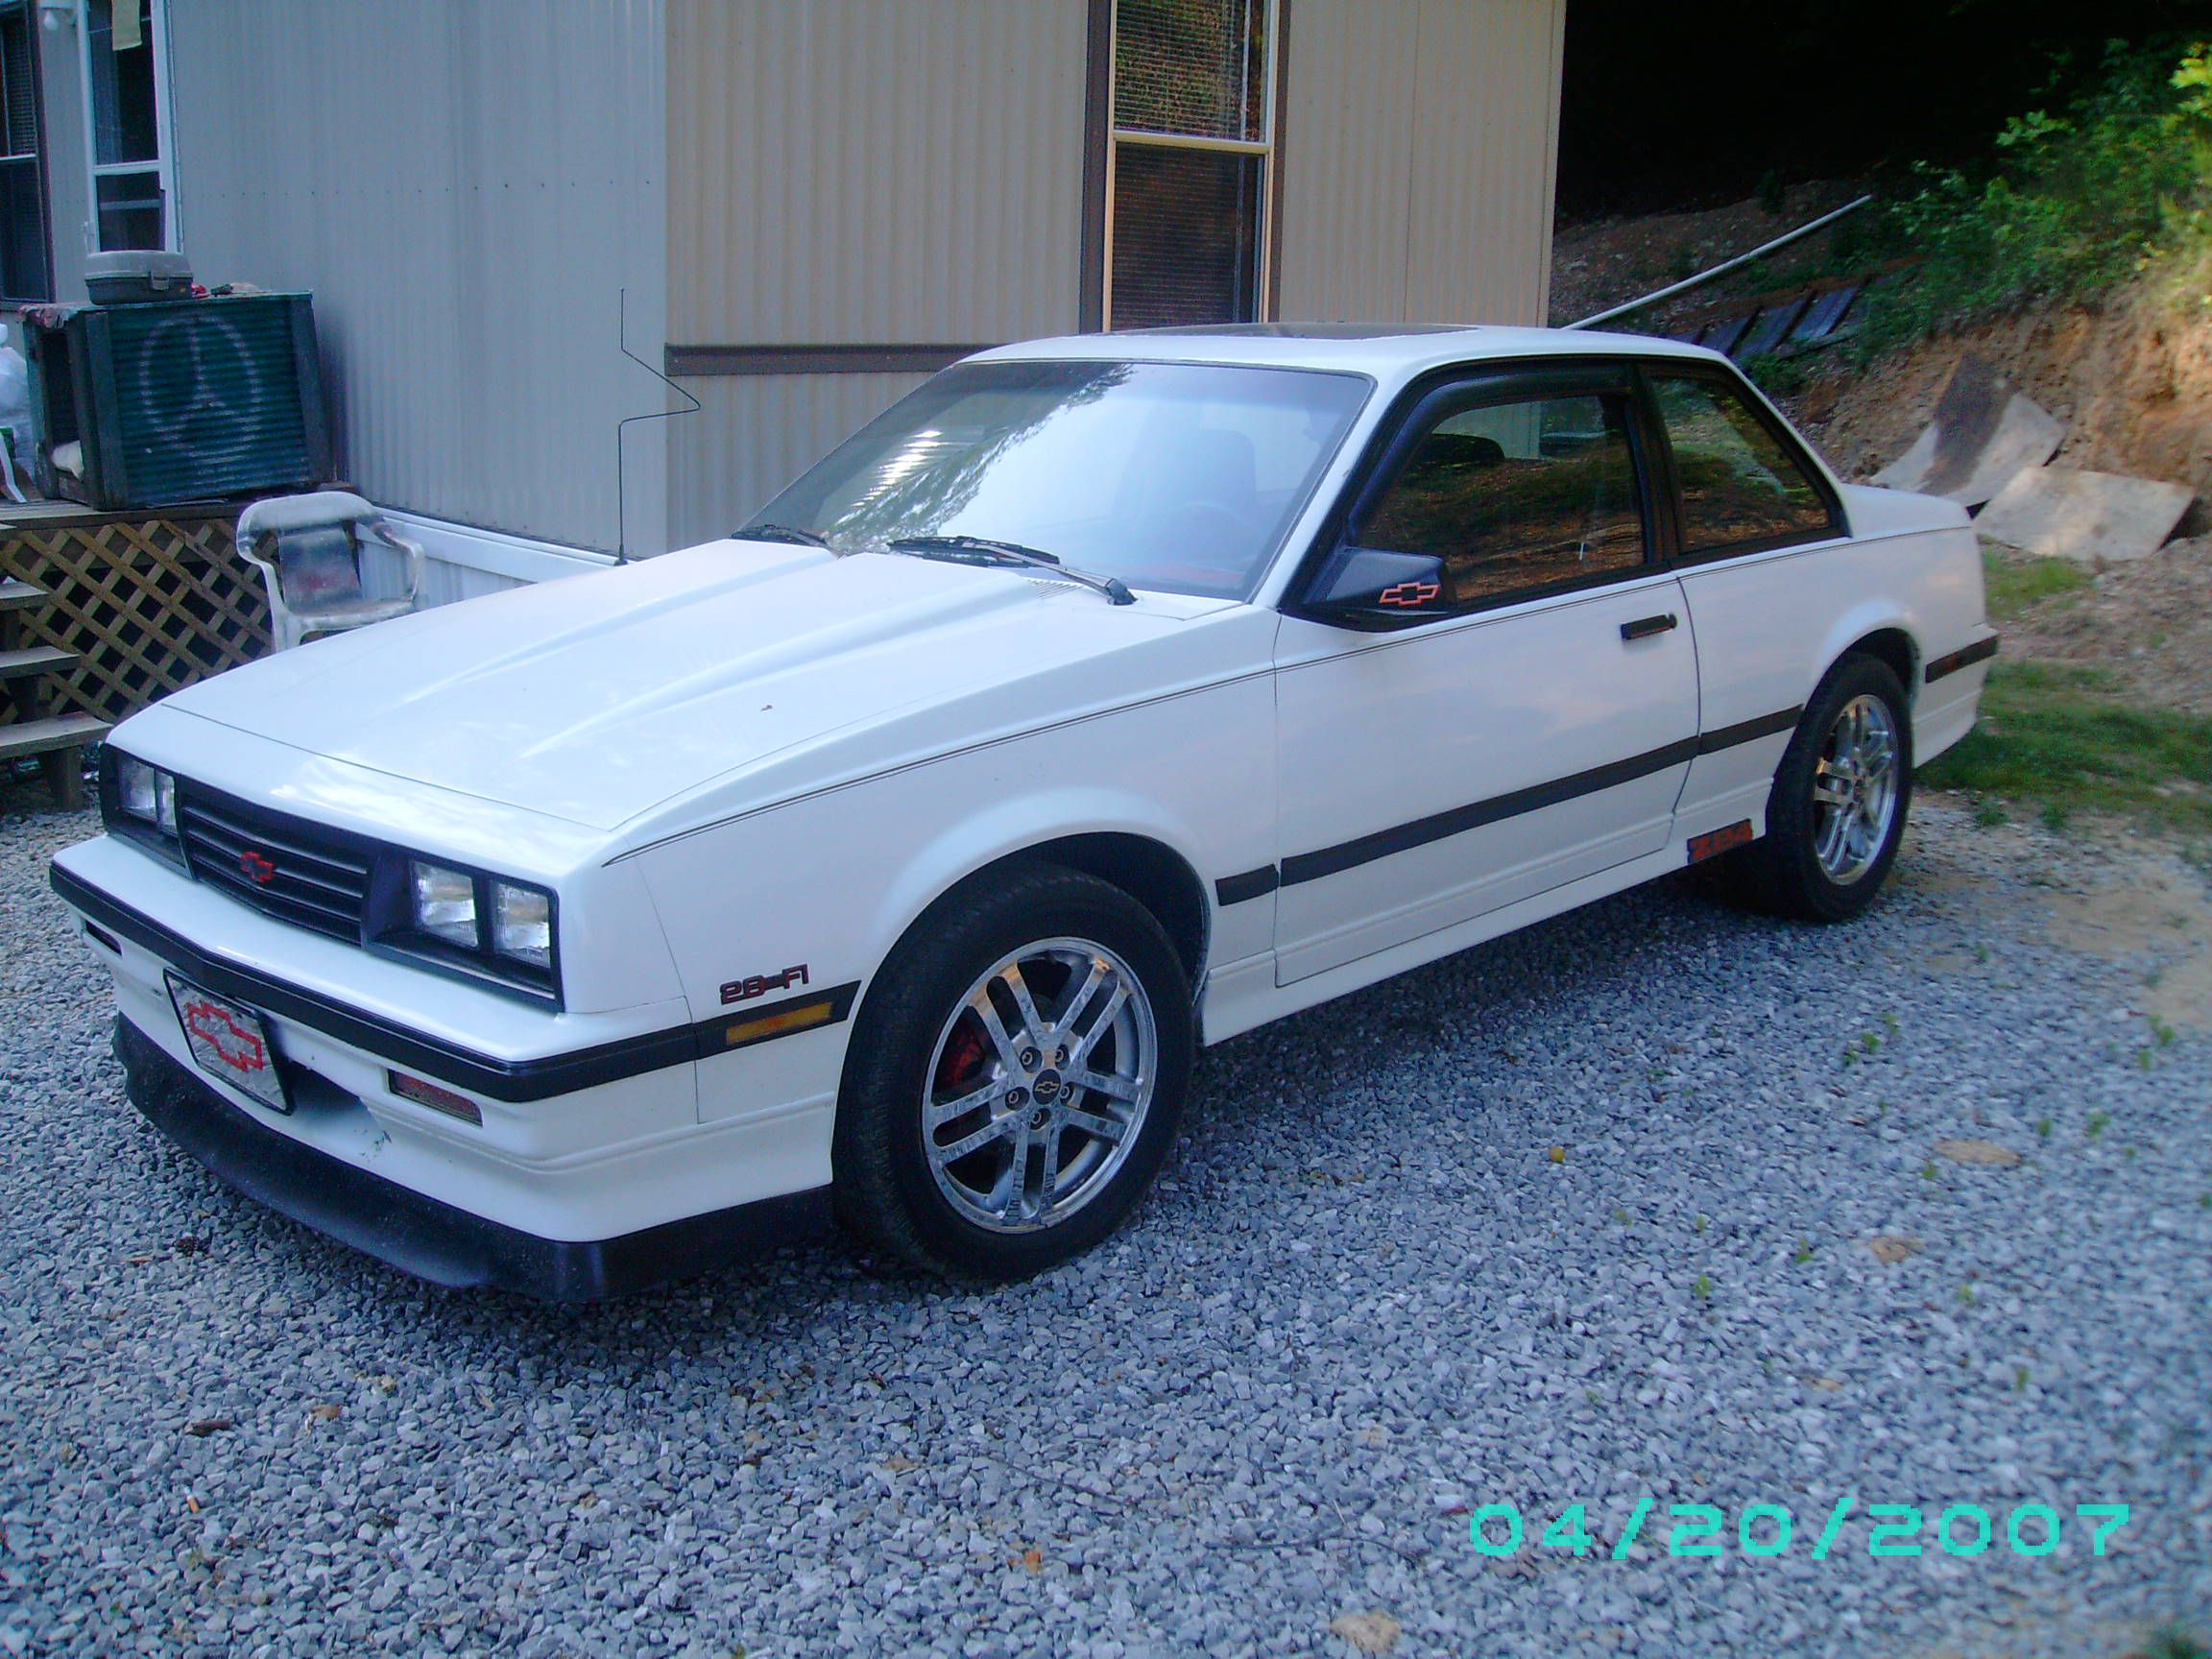 white 1986 chevy cavalier z24 my 2nd car chevrolet cavalier gm car chevrolet white 1986 chevy cavalier z24 my 2nd